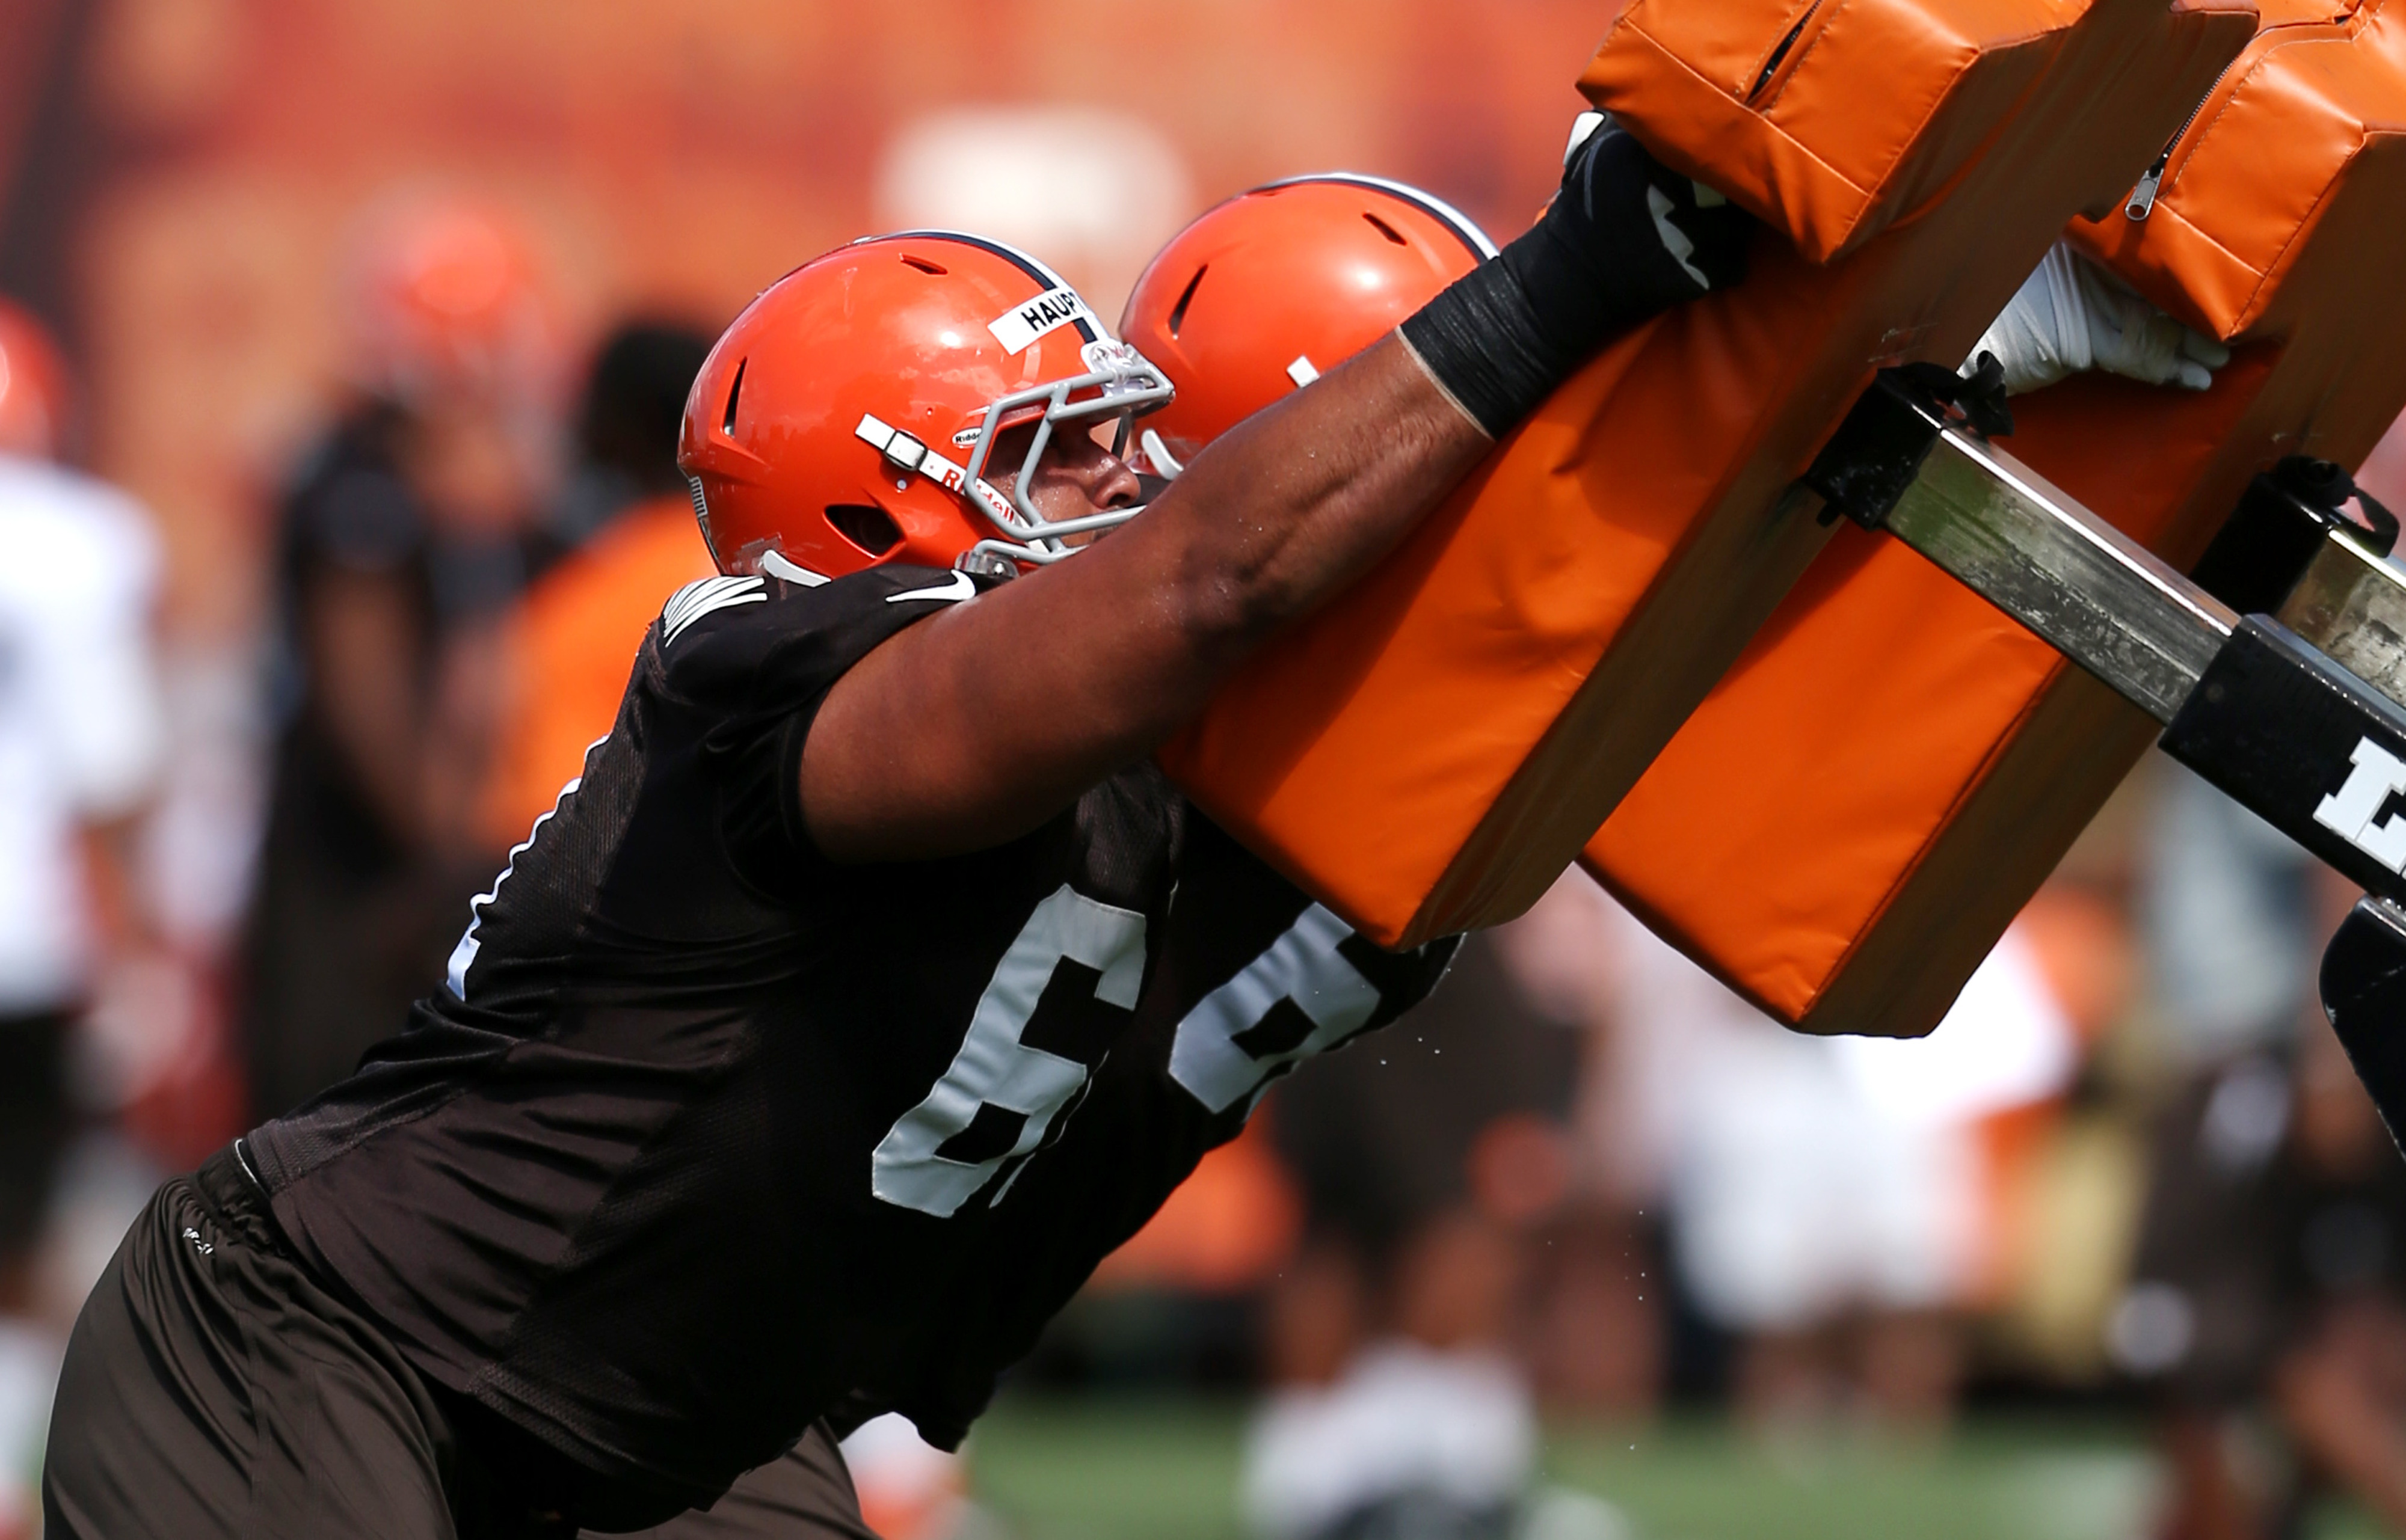 Cleveland Browns offensive linesman Caylin Hauptmann (61), left, and offensive linesman Ryan Miller (60) hit the sled during training camp at the Cleveland Browns Training Facility on Friday. Miller got hurt when practice moved indoors on Saturday.